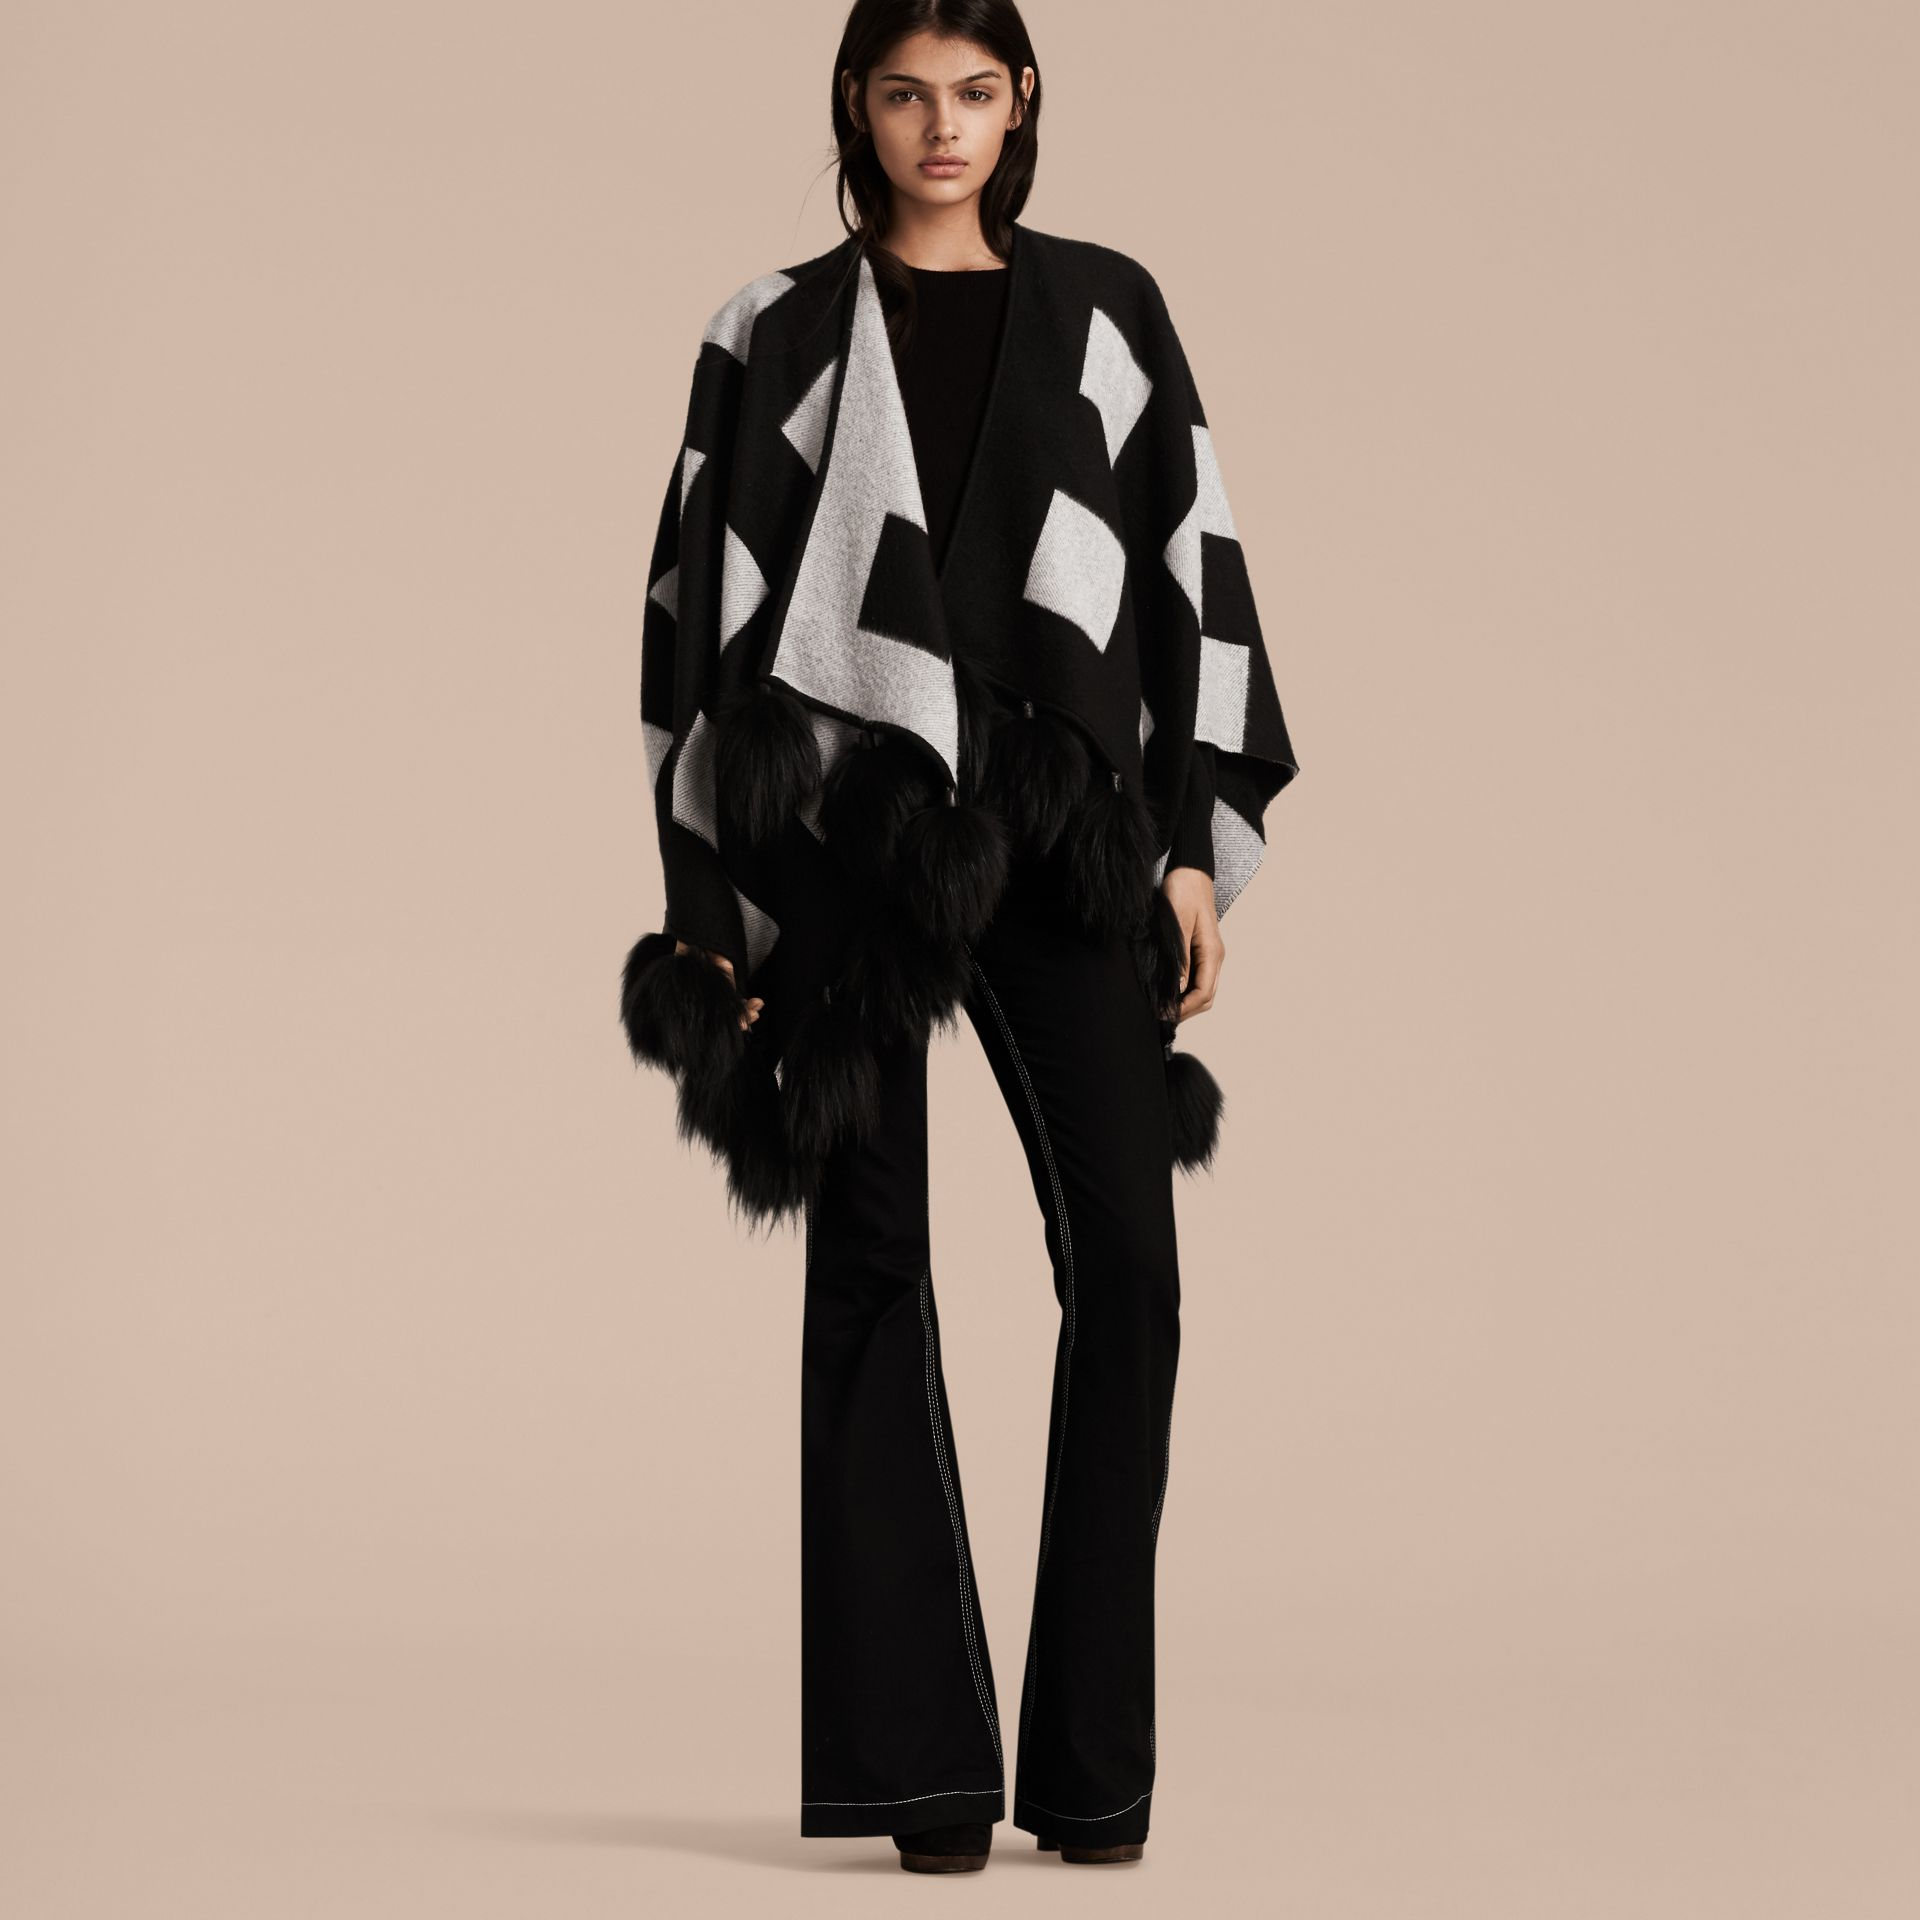 Black/white Check Jacquard Cashmere Poncho with Raccoon Pom-poms - gallery image 1